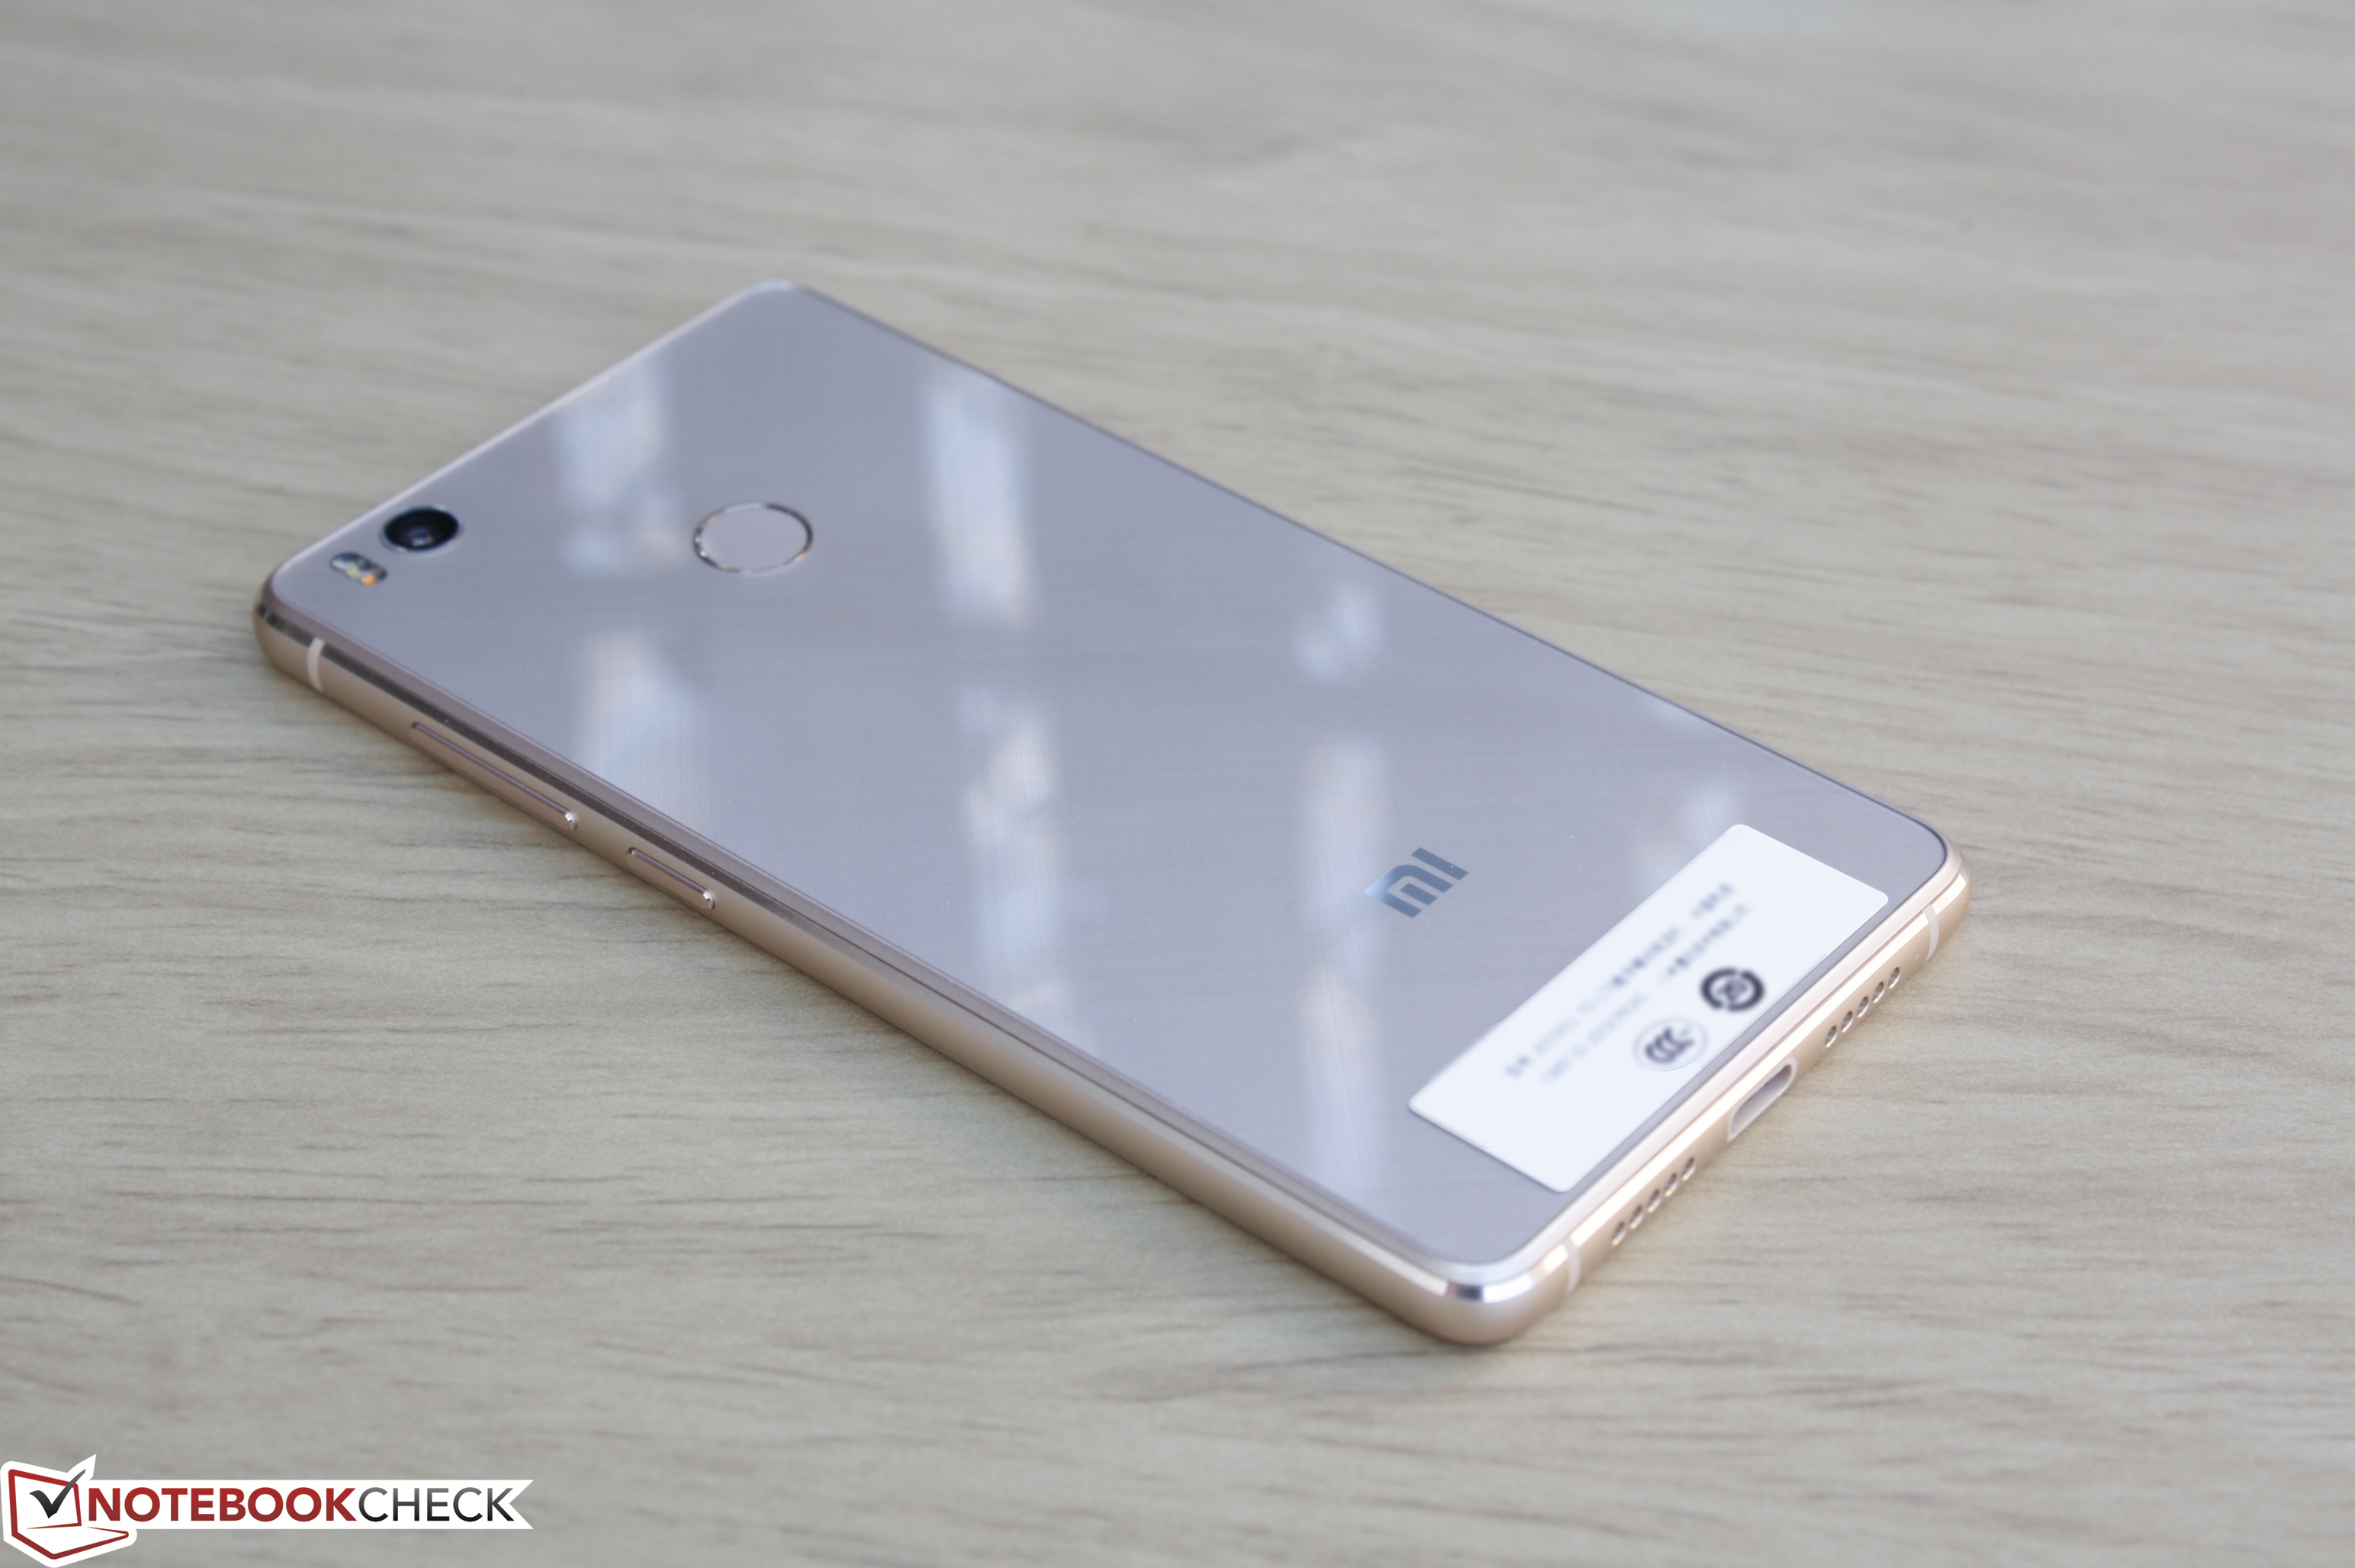 Xiaomi Mi 4s Smartphone Review Reviews Shining Case Crystal Clear For Redmi 3 Full Resolution